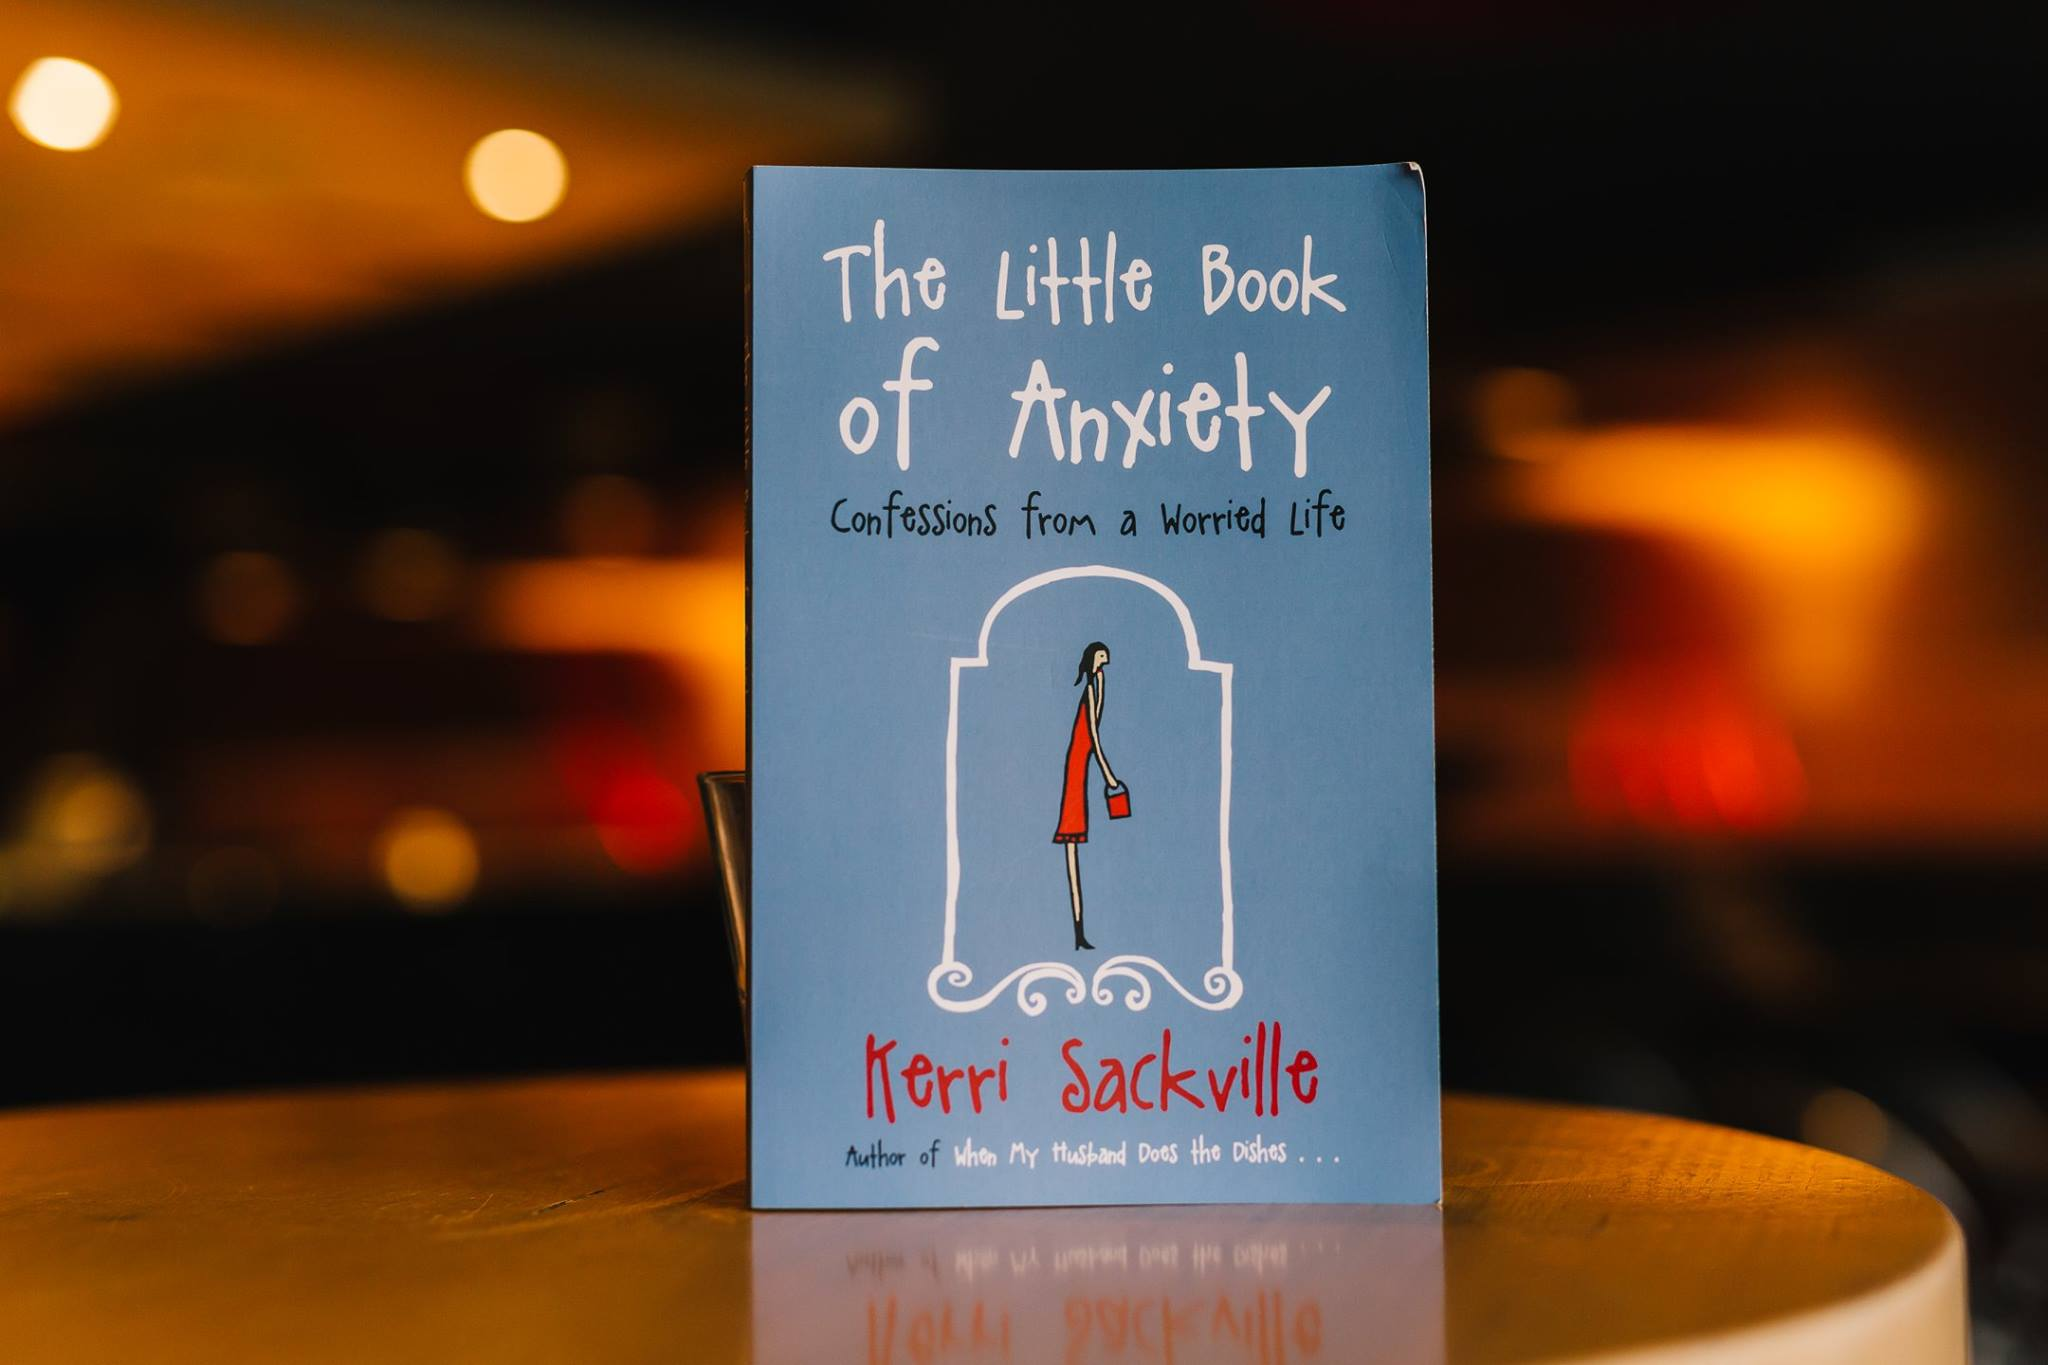 A copy of 'The Little Book of Anxiety, Confessions from a Worried Life' by Kerri Sackville. Everyone who attended received their own copy. Published by Penguin Random House.